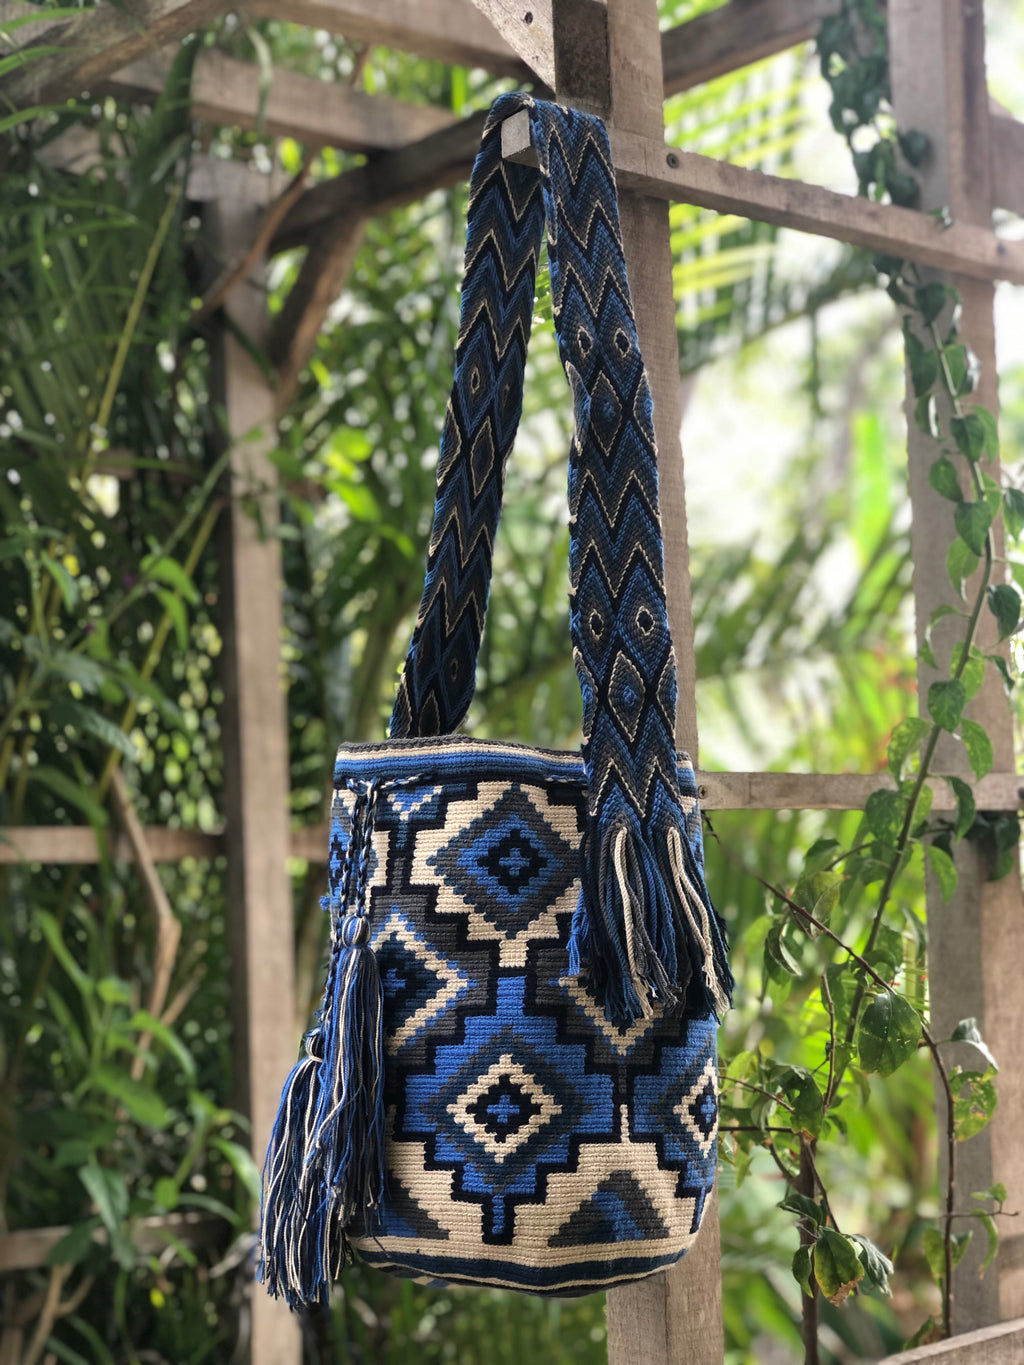 Mochila Blue Diamond Large Design-Jenstones Jewelry